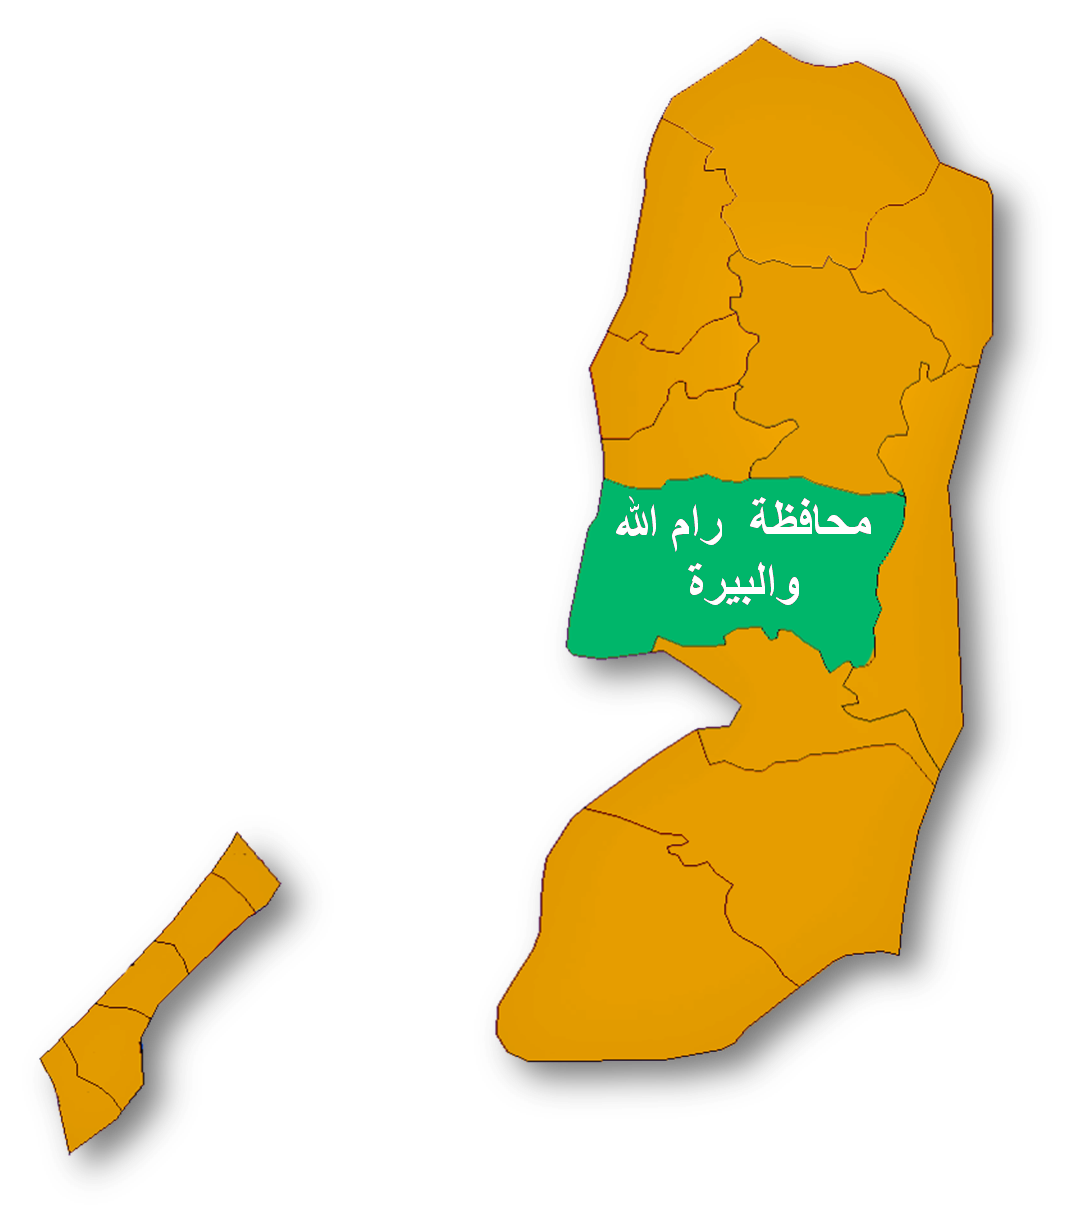 http://upload.wikimedia.org/wikipedia/commons/3/37/Governate_of_Ramallah_and_el-Beireh.png